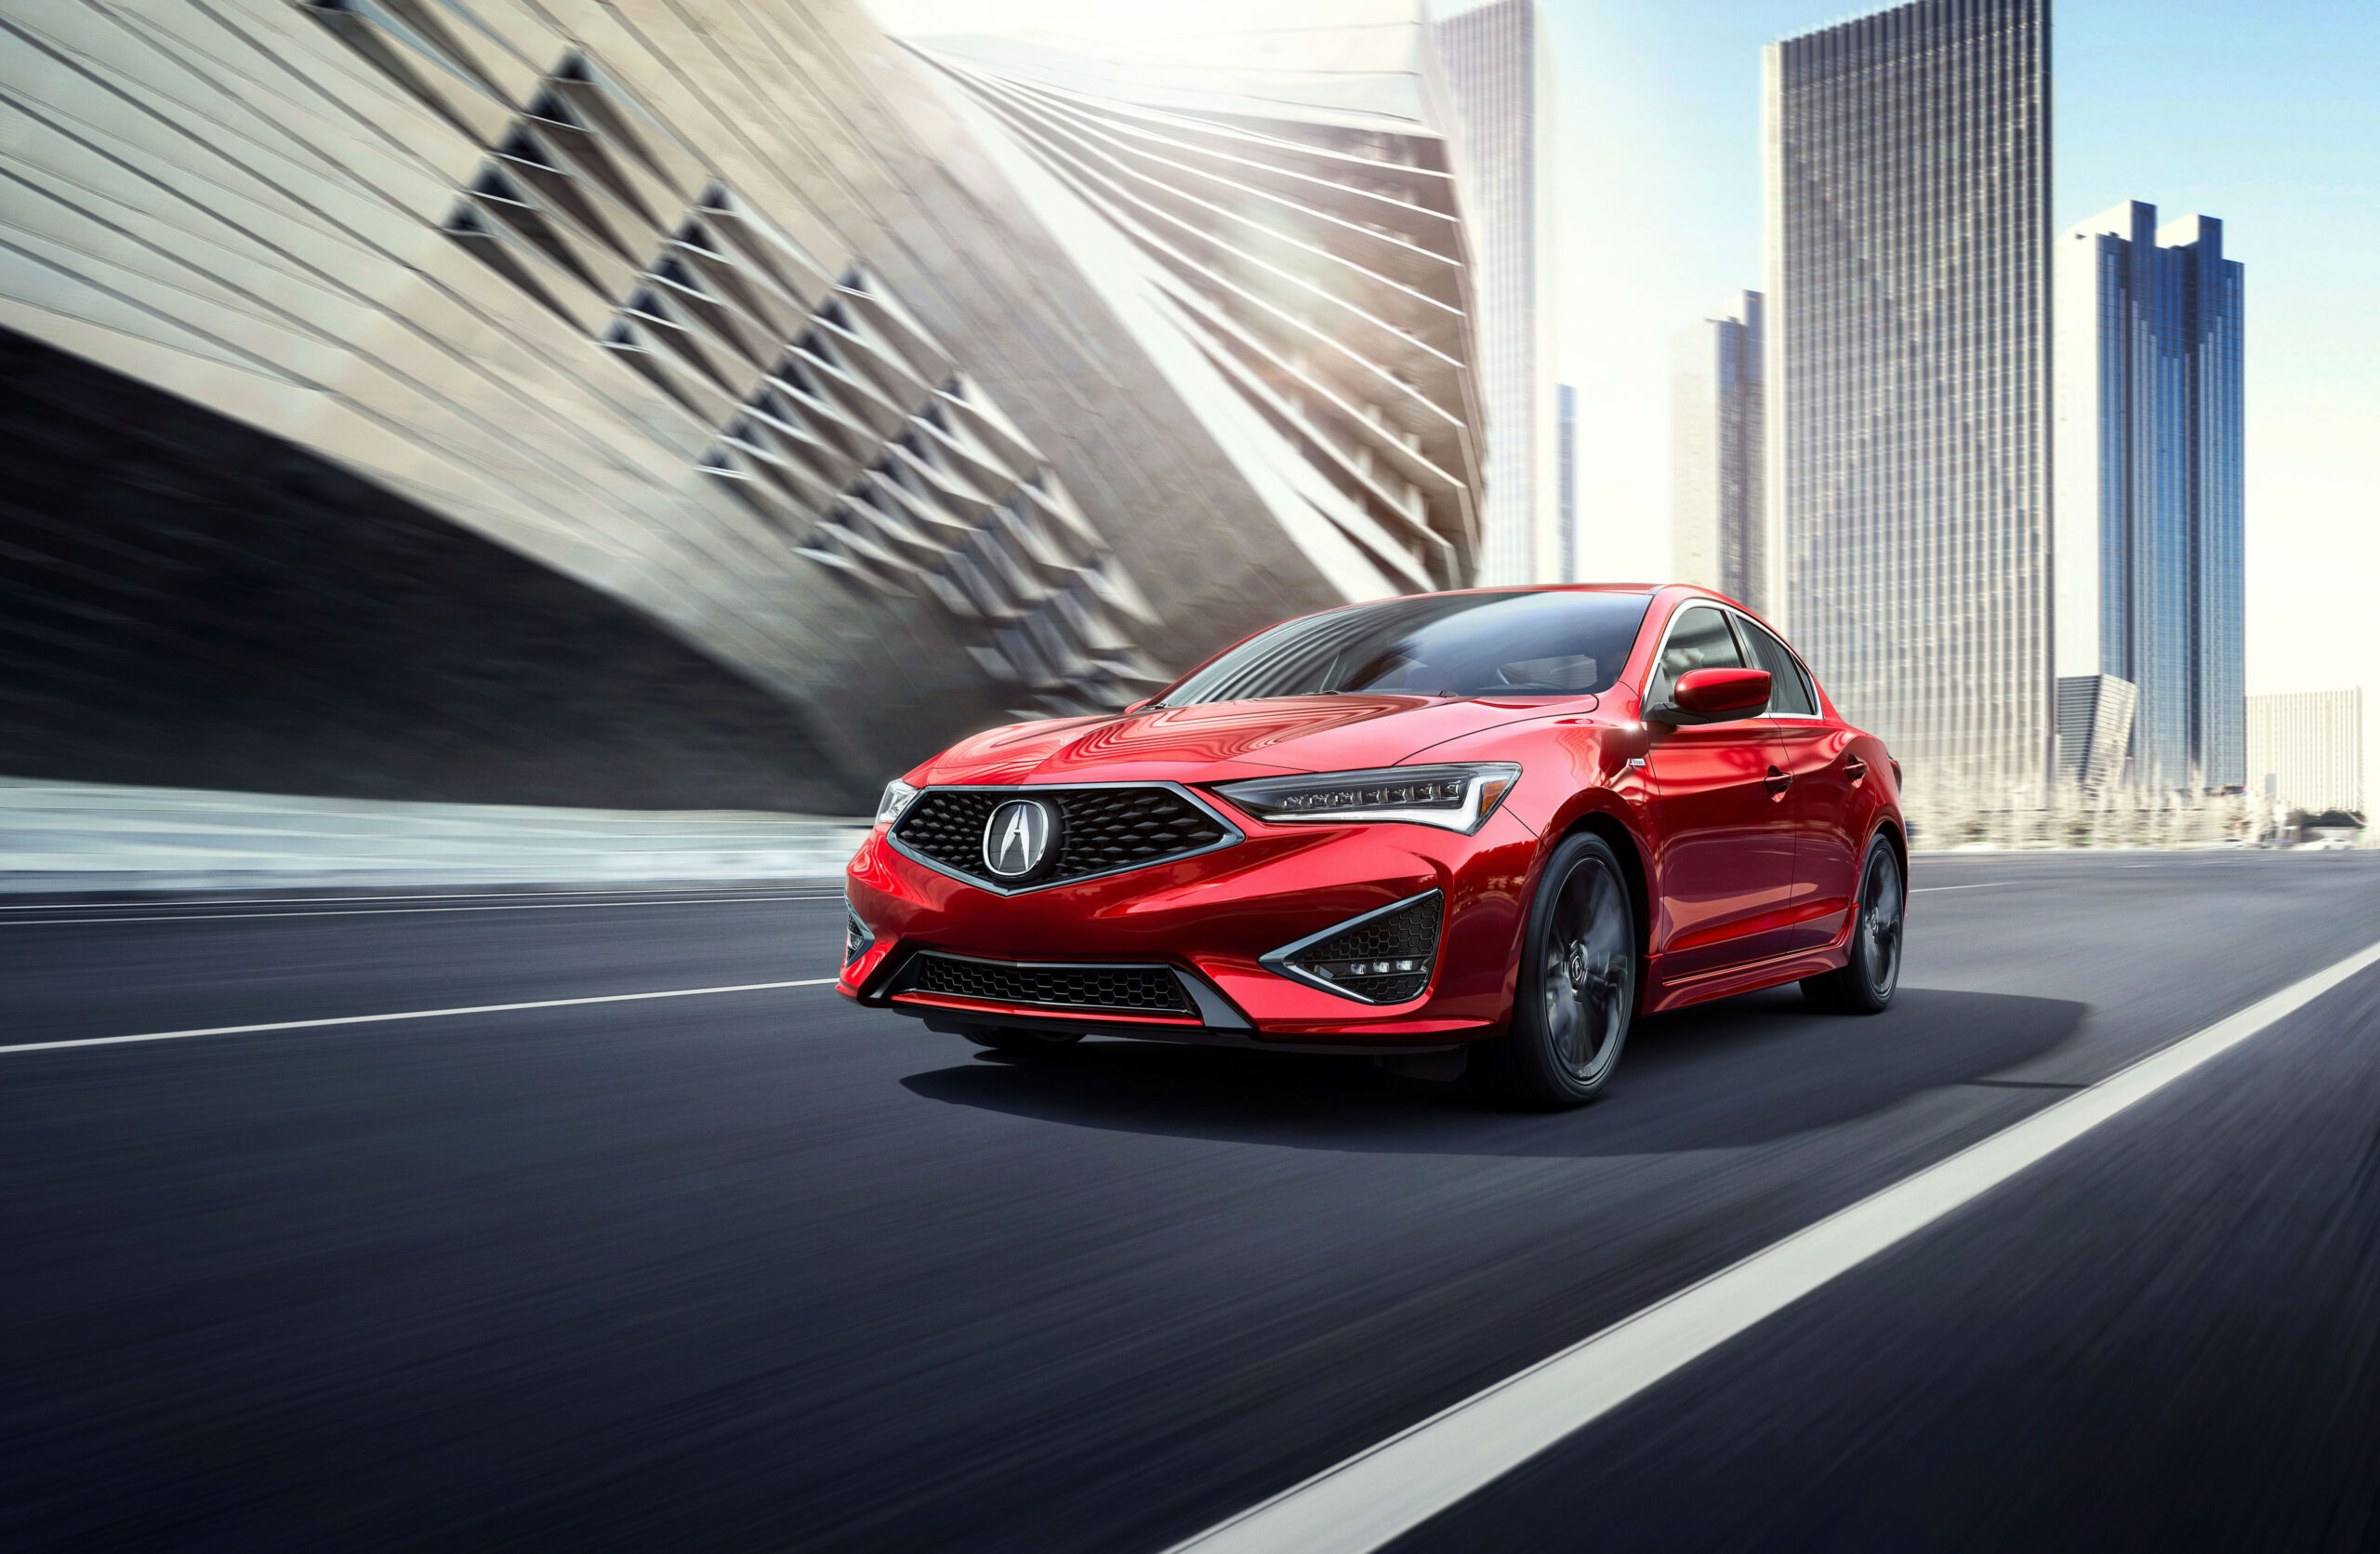 6 Acura ILX Review, Pricing, and Specs - 2020 acura ilx review